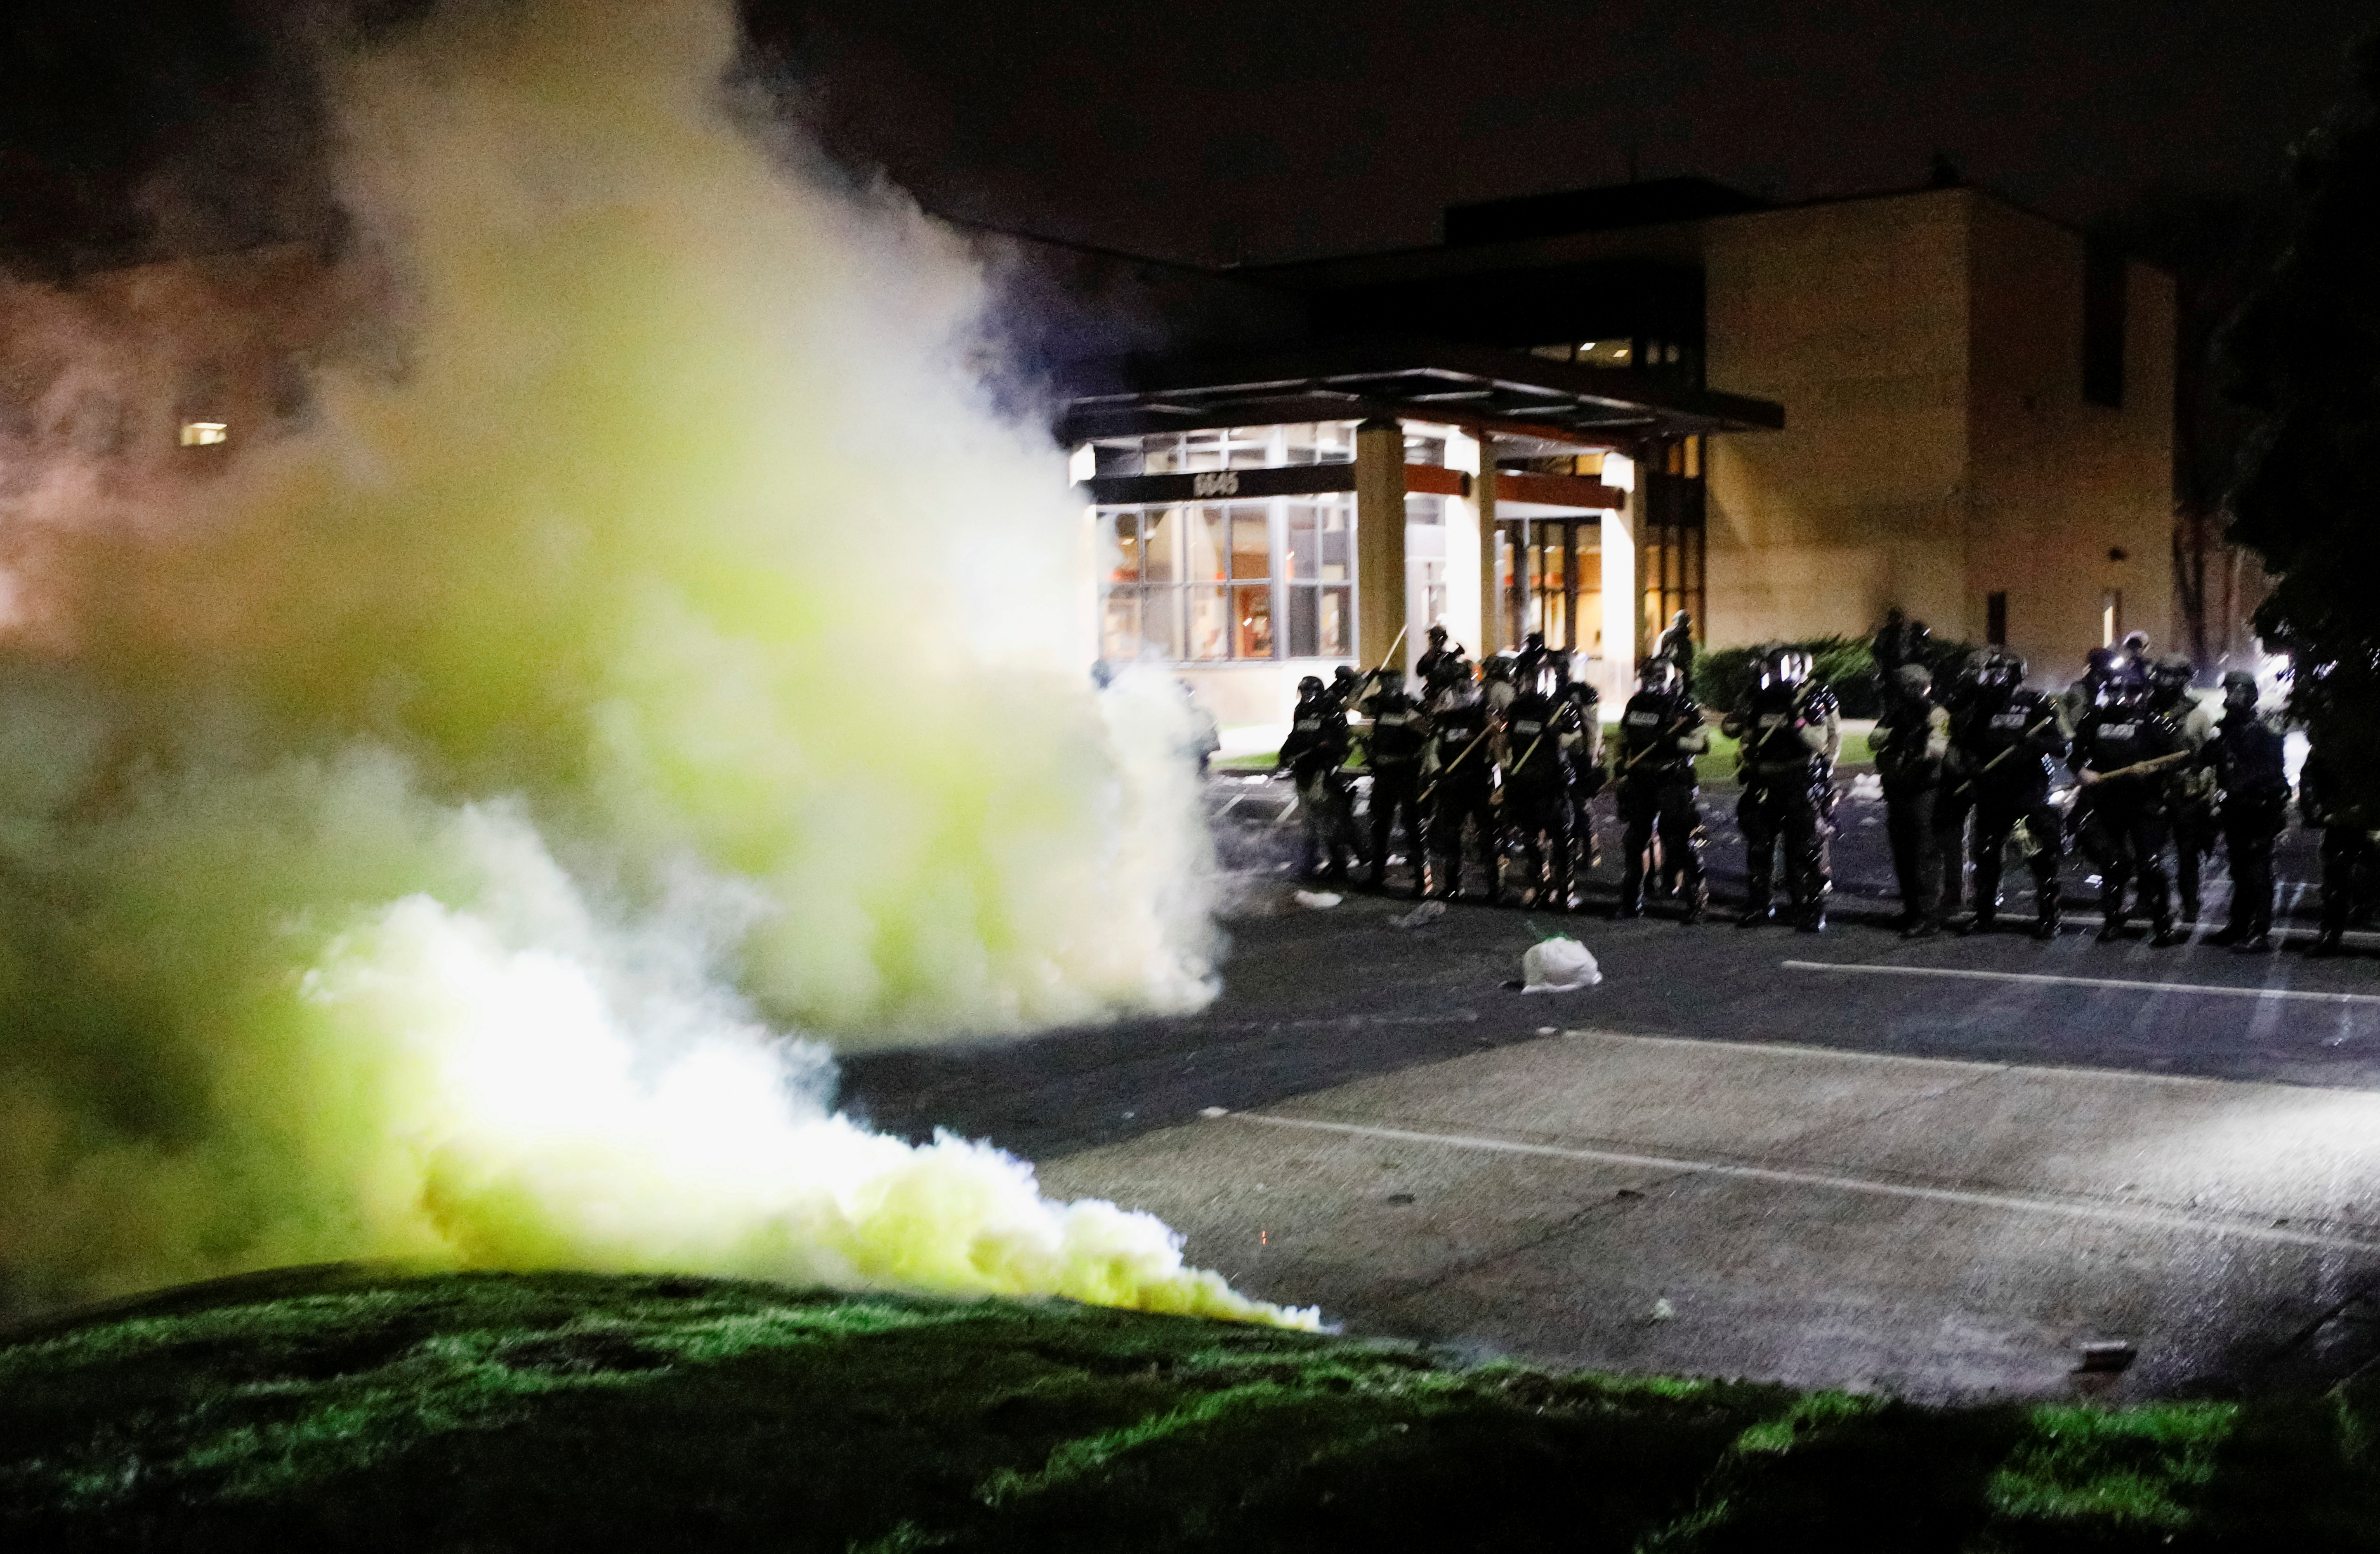 Tear gas is seen as officers stand guard outside Brooklyn Center Police Department with trash thrown at them by demonstrators at their feet after police allegedly shot and killed a man, who local media report is identified by the victim's mother as Daunte Wright, in Brooklyn Center, Minnesota, U.S., April 11, 2021. REUTERS/Nick Pfosi